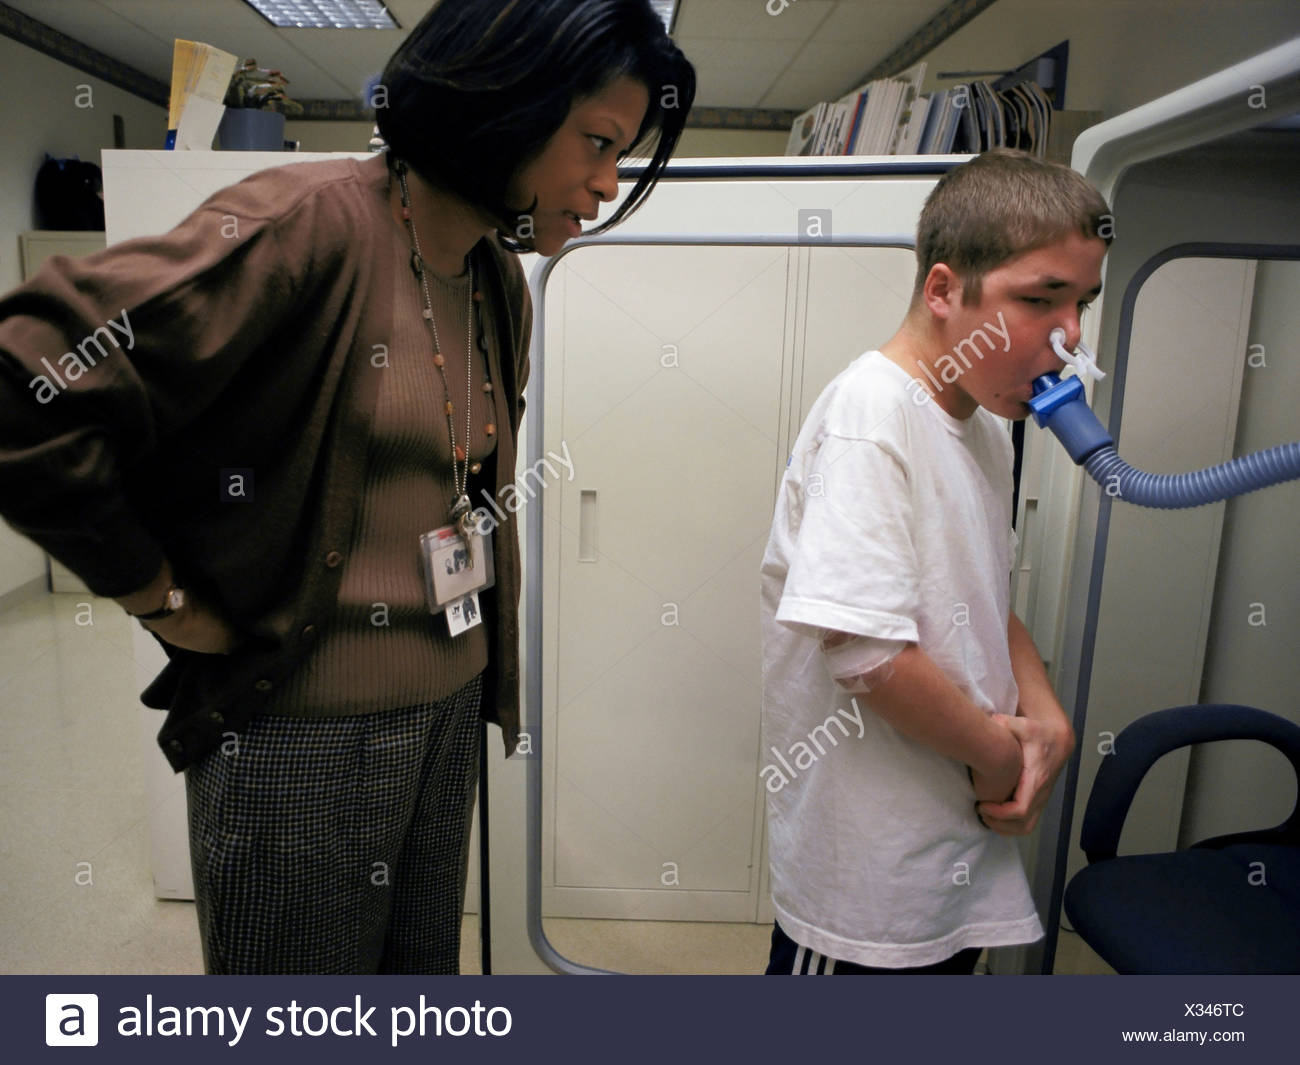 Boy with Cystic Fibrosis Taking a Lung Capacity Test - Stock Image